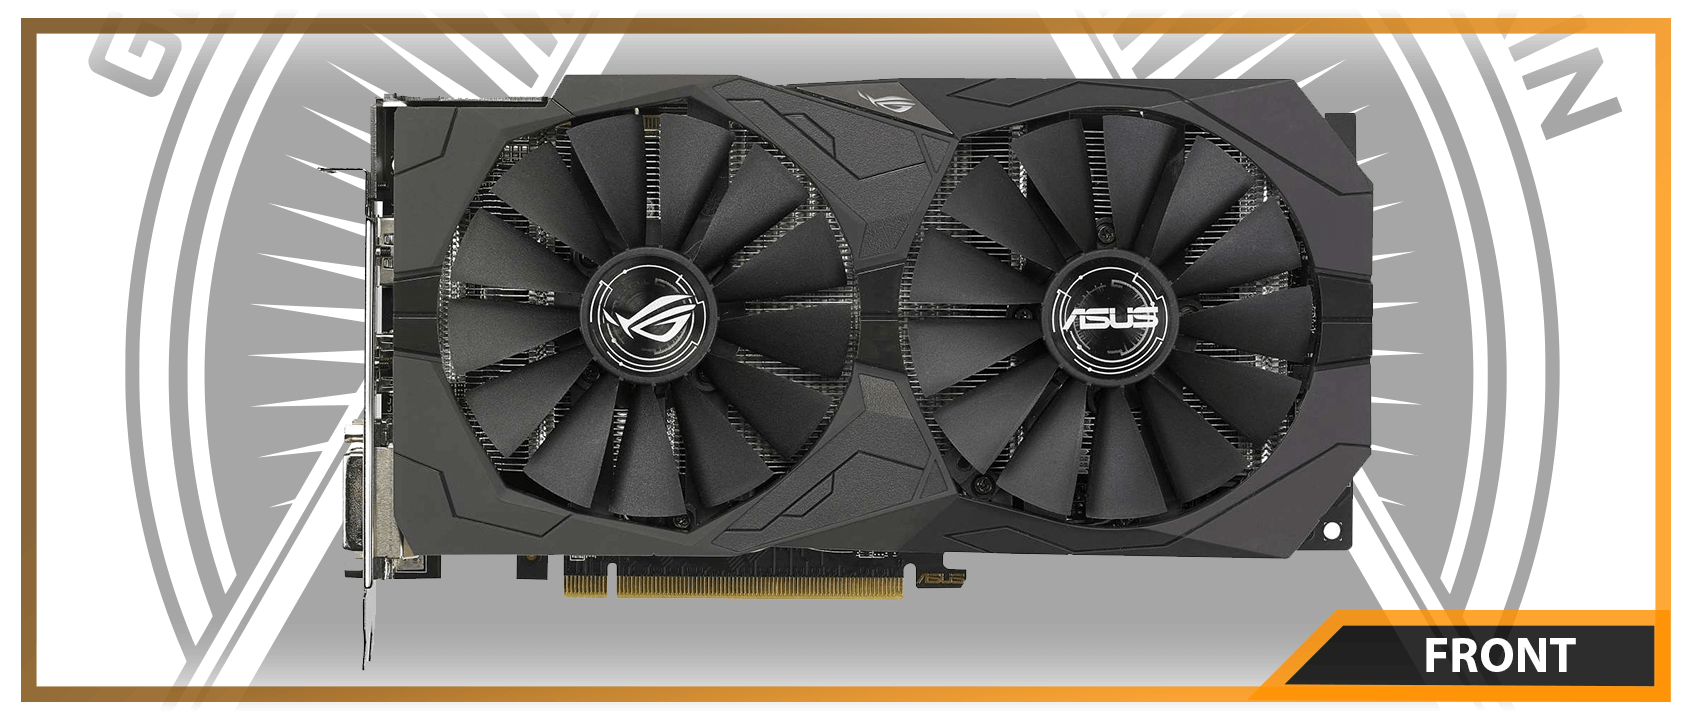 ASUS ROG STRIX RX 570 GAMING OC 8 GB